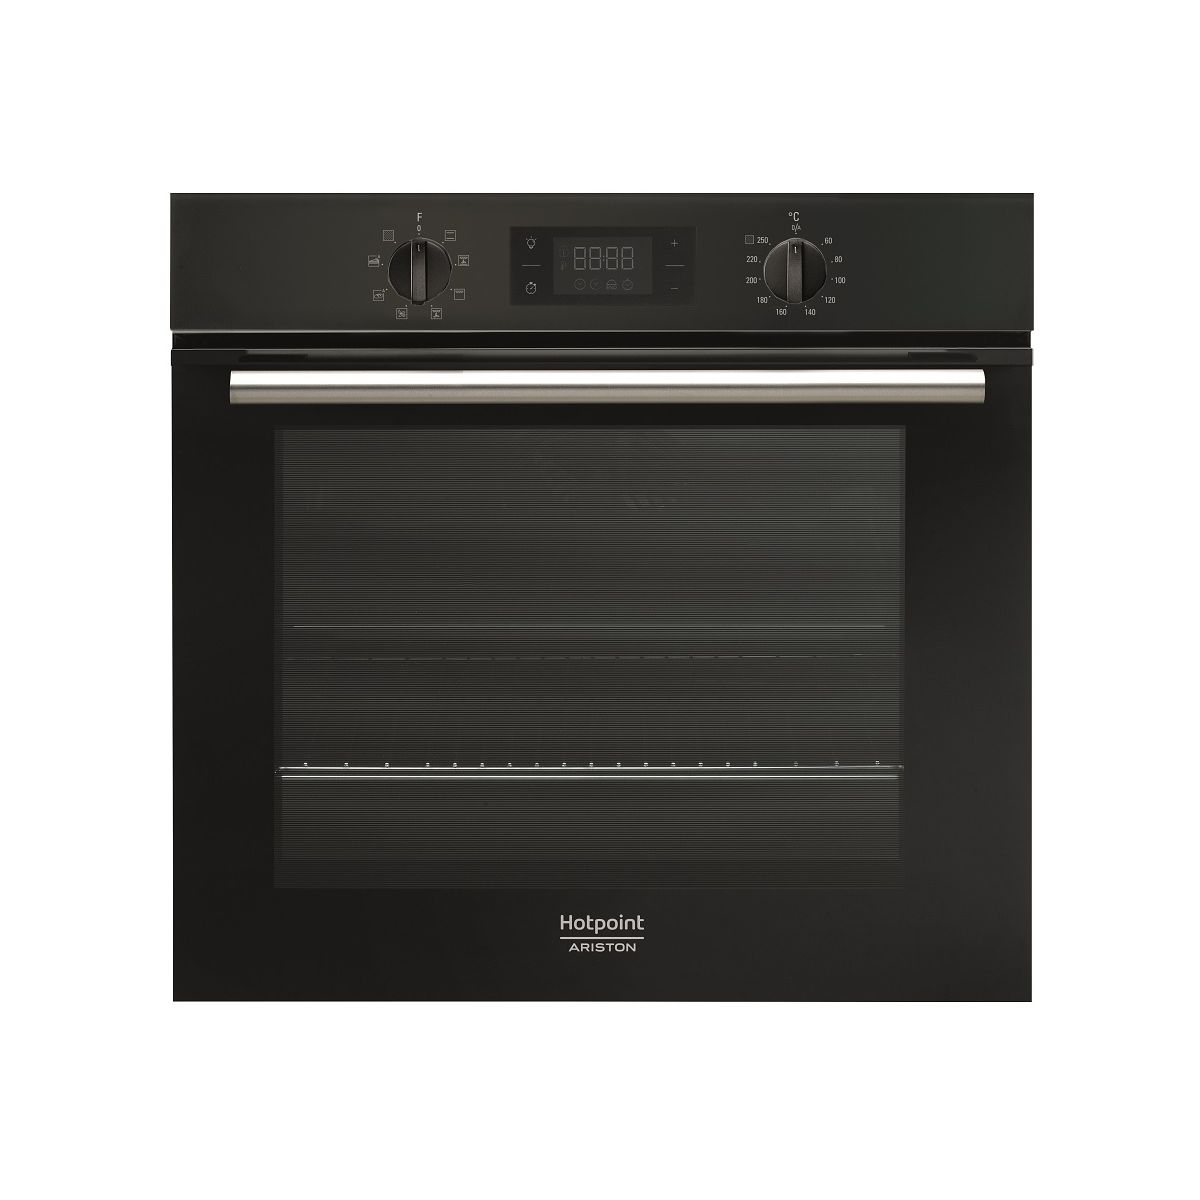 Four encastrable HOTPOINT FA2 540P BL HA